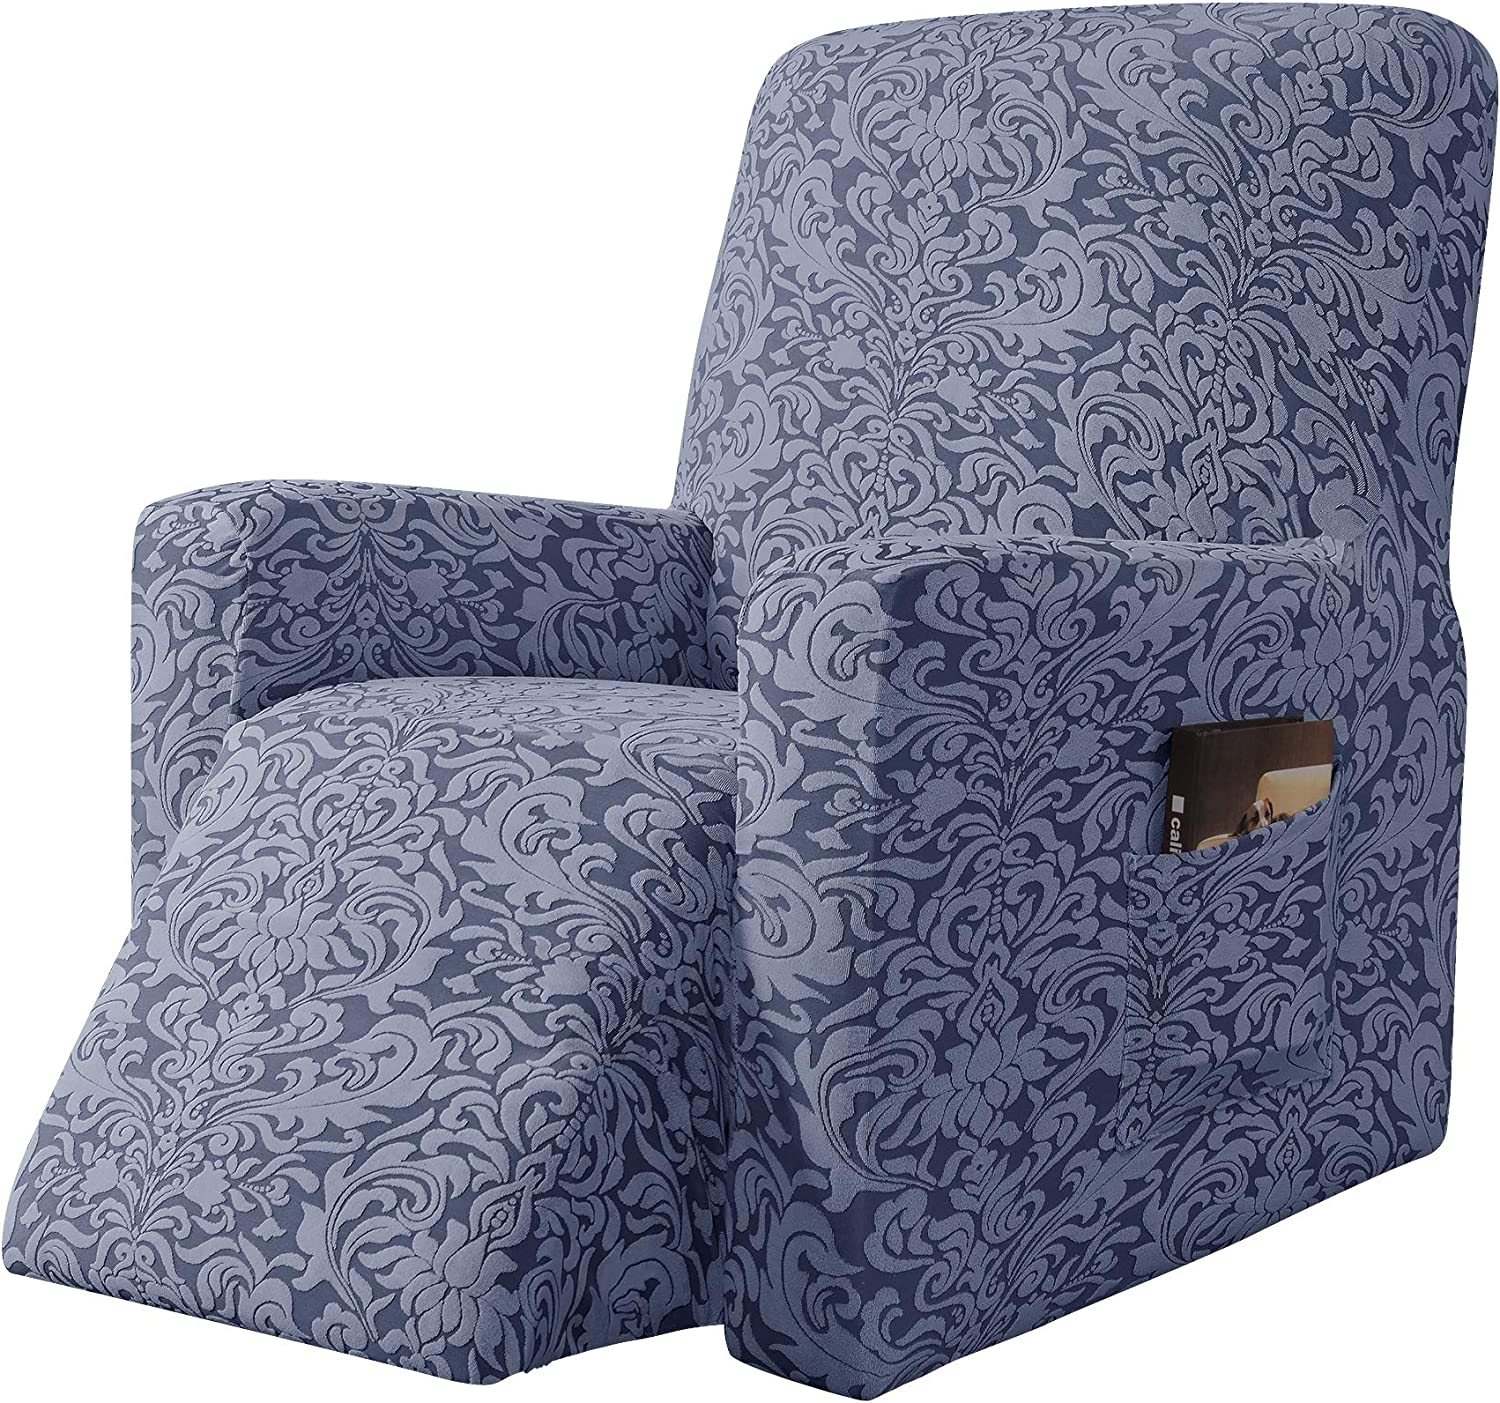 subrtex Stretch Rocking Recliner Silpcover Lazy Boy Chair Covers for Leather and Fabric Sofa with Side Pocket (Grayish Blue, Recliner)